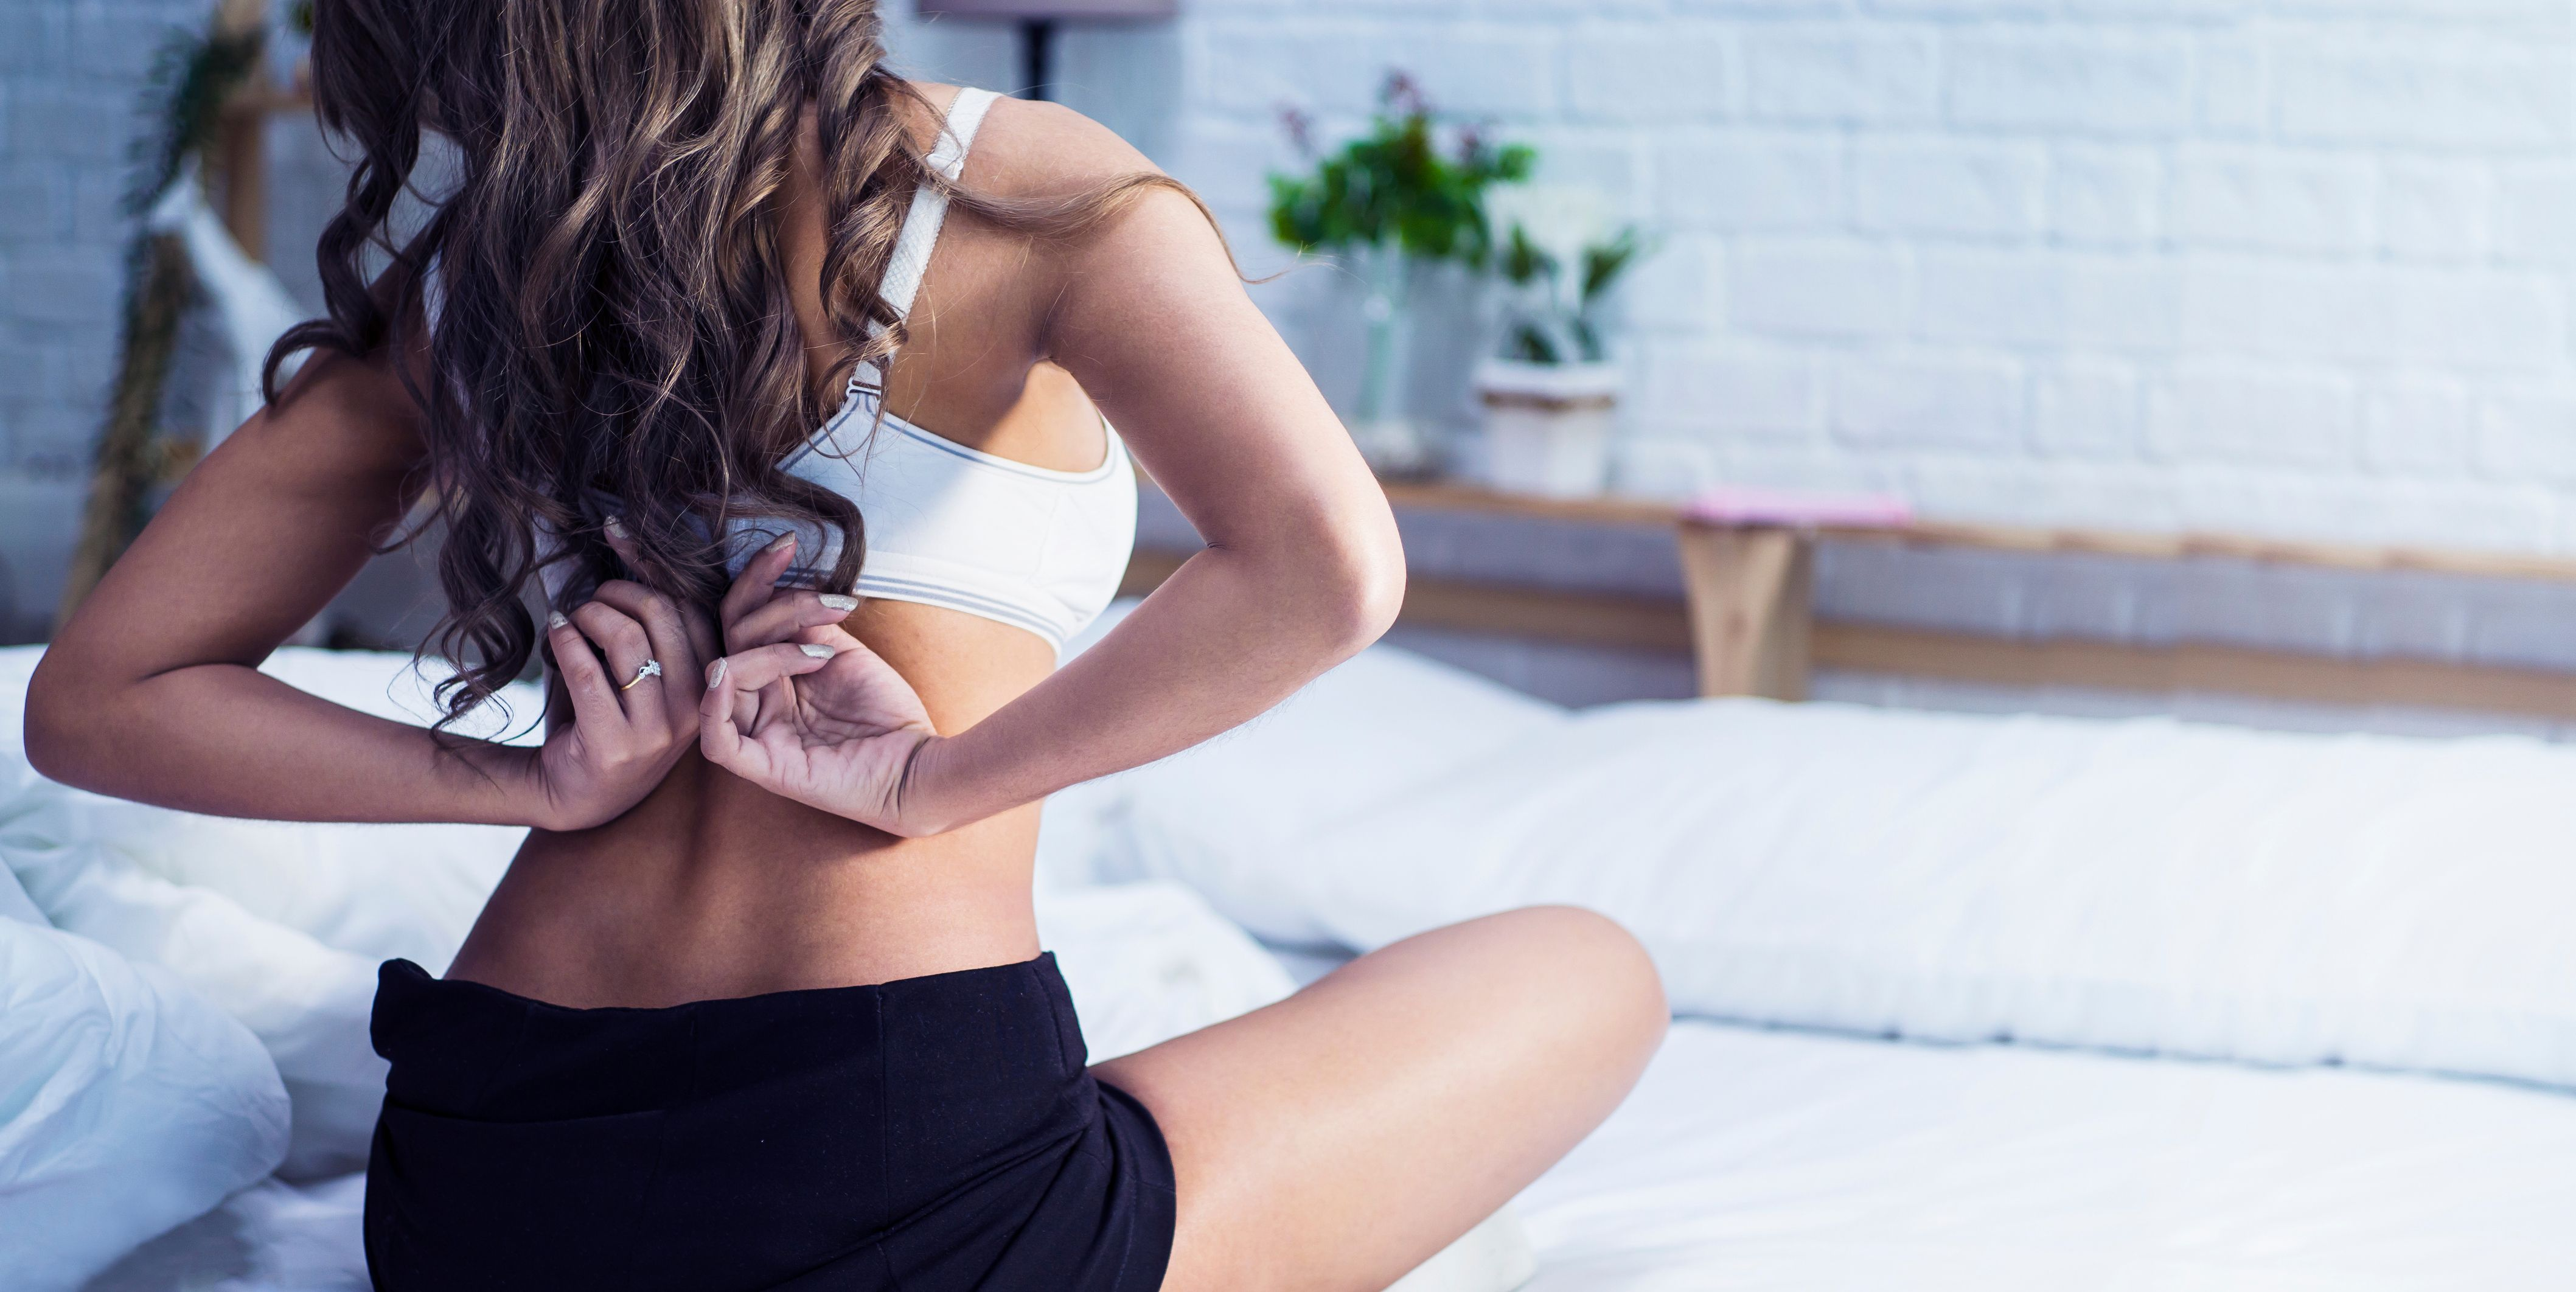 Rear View Of Woman Wearing Bra On Bed At Home